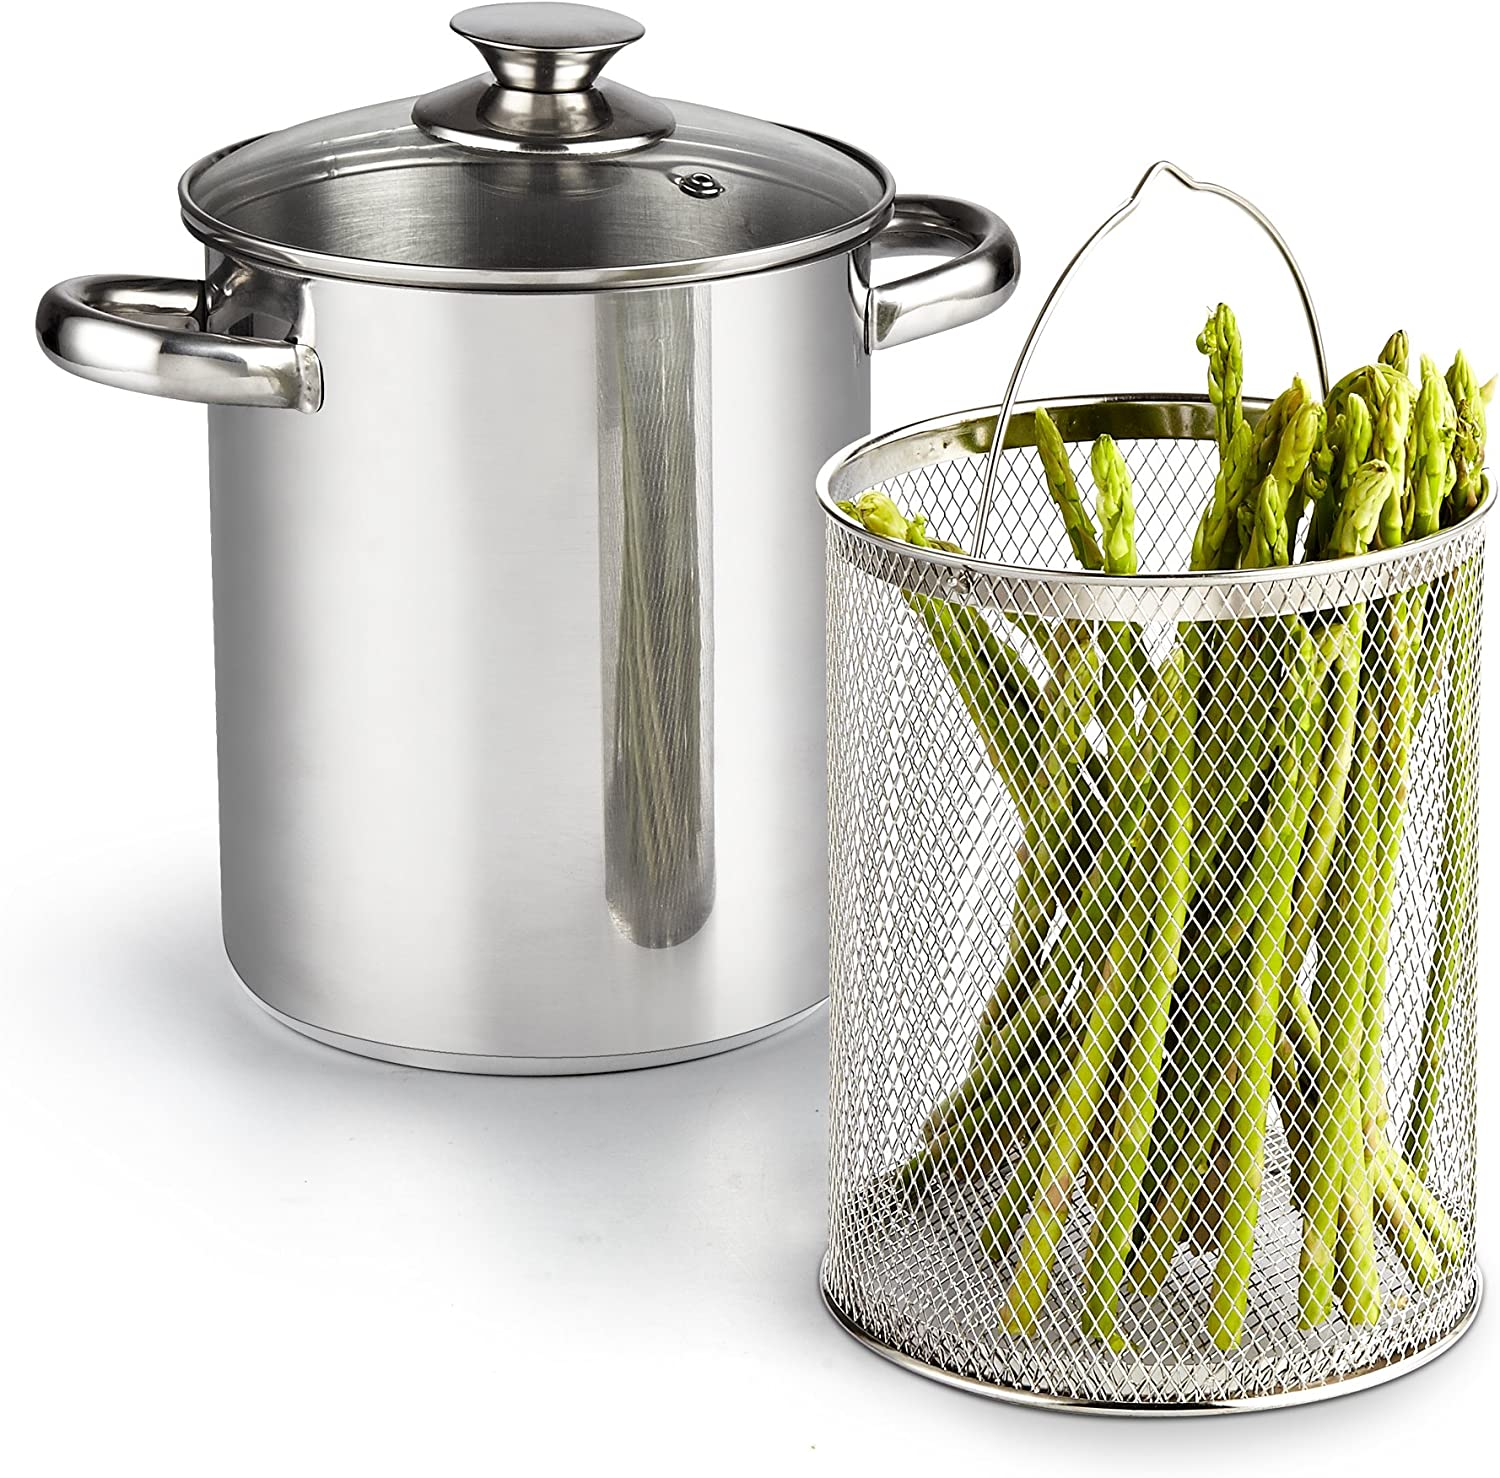 Cook N Home 4 Quart 3-Piece Vegetable Asparagus Steamer Pot, Stainless Steel